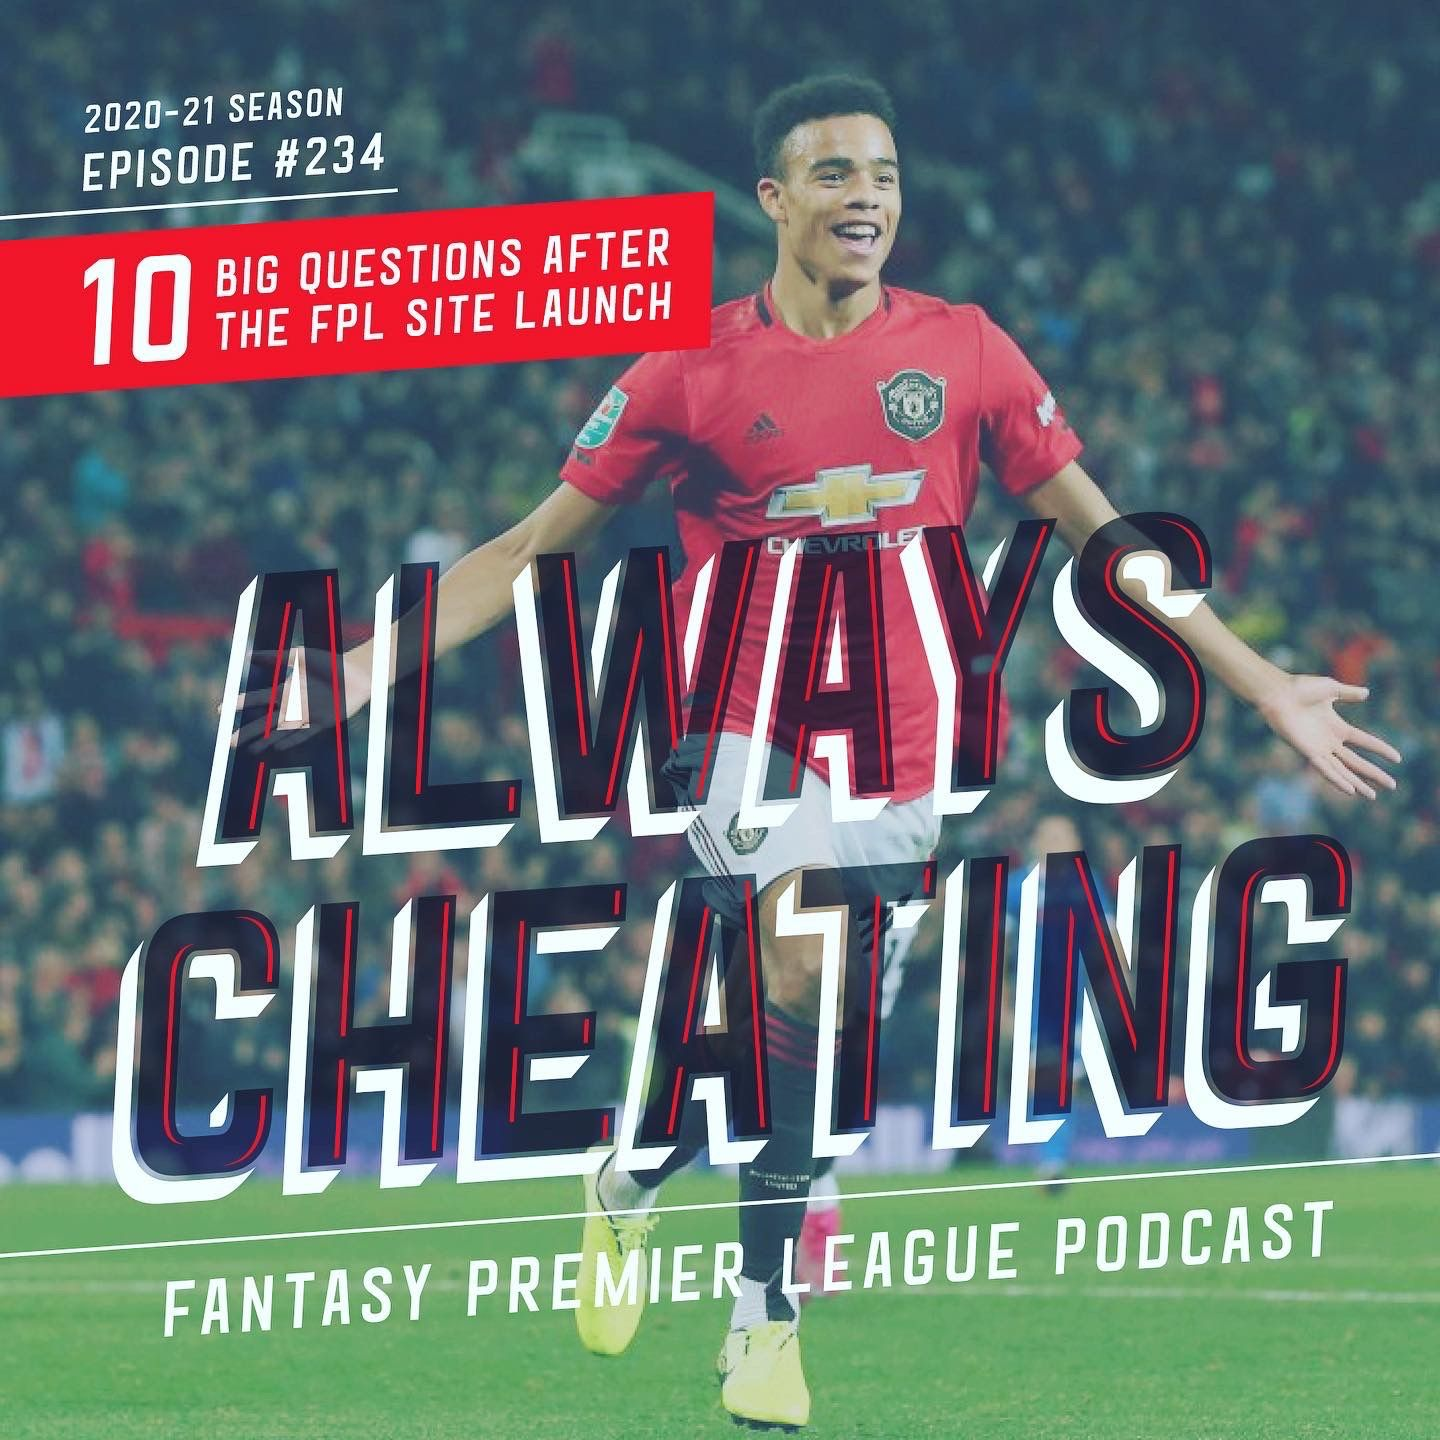 Ten Big Questions After the FPL Site Launch